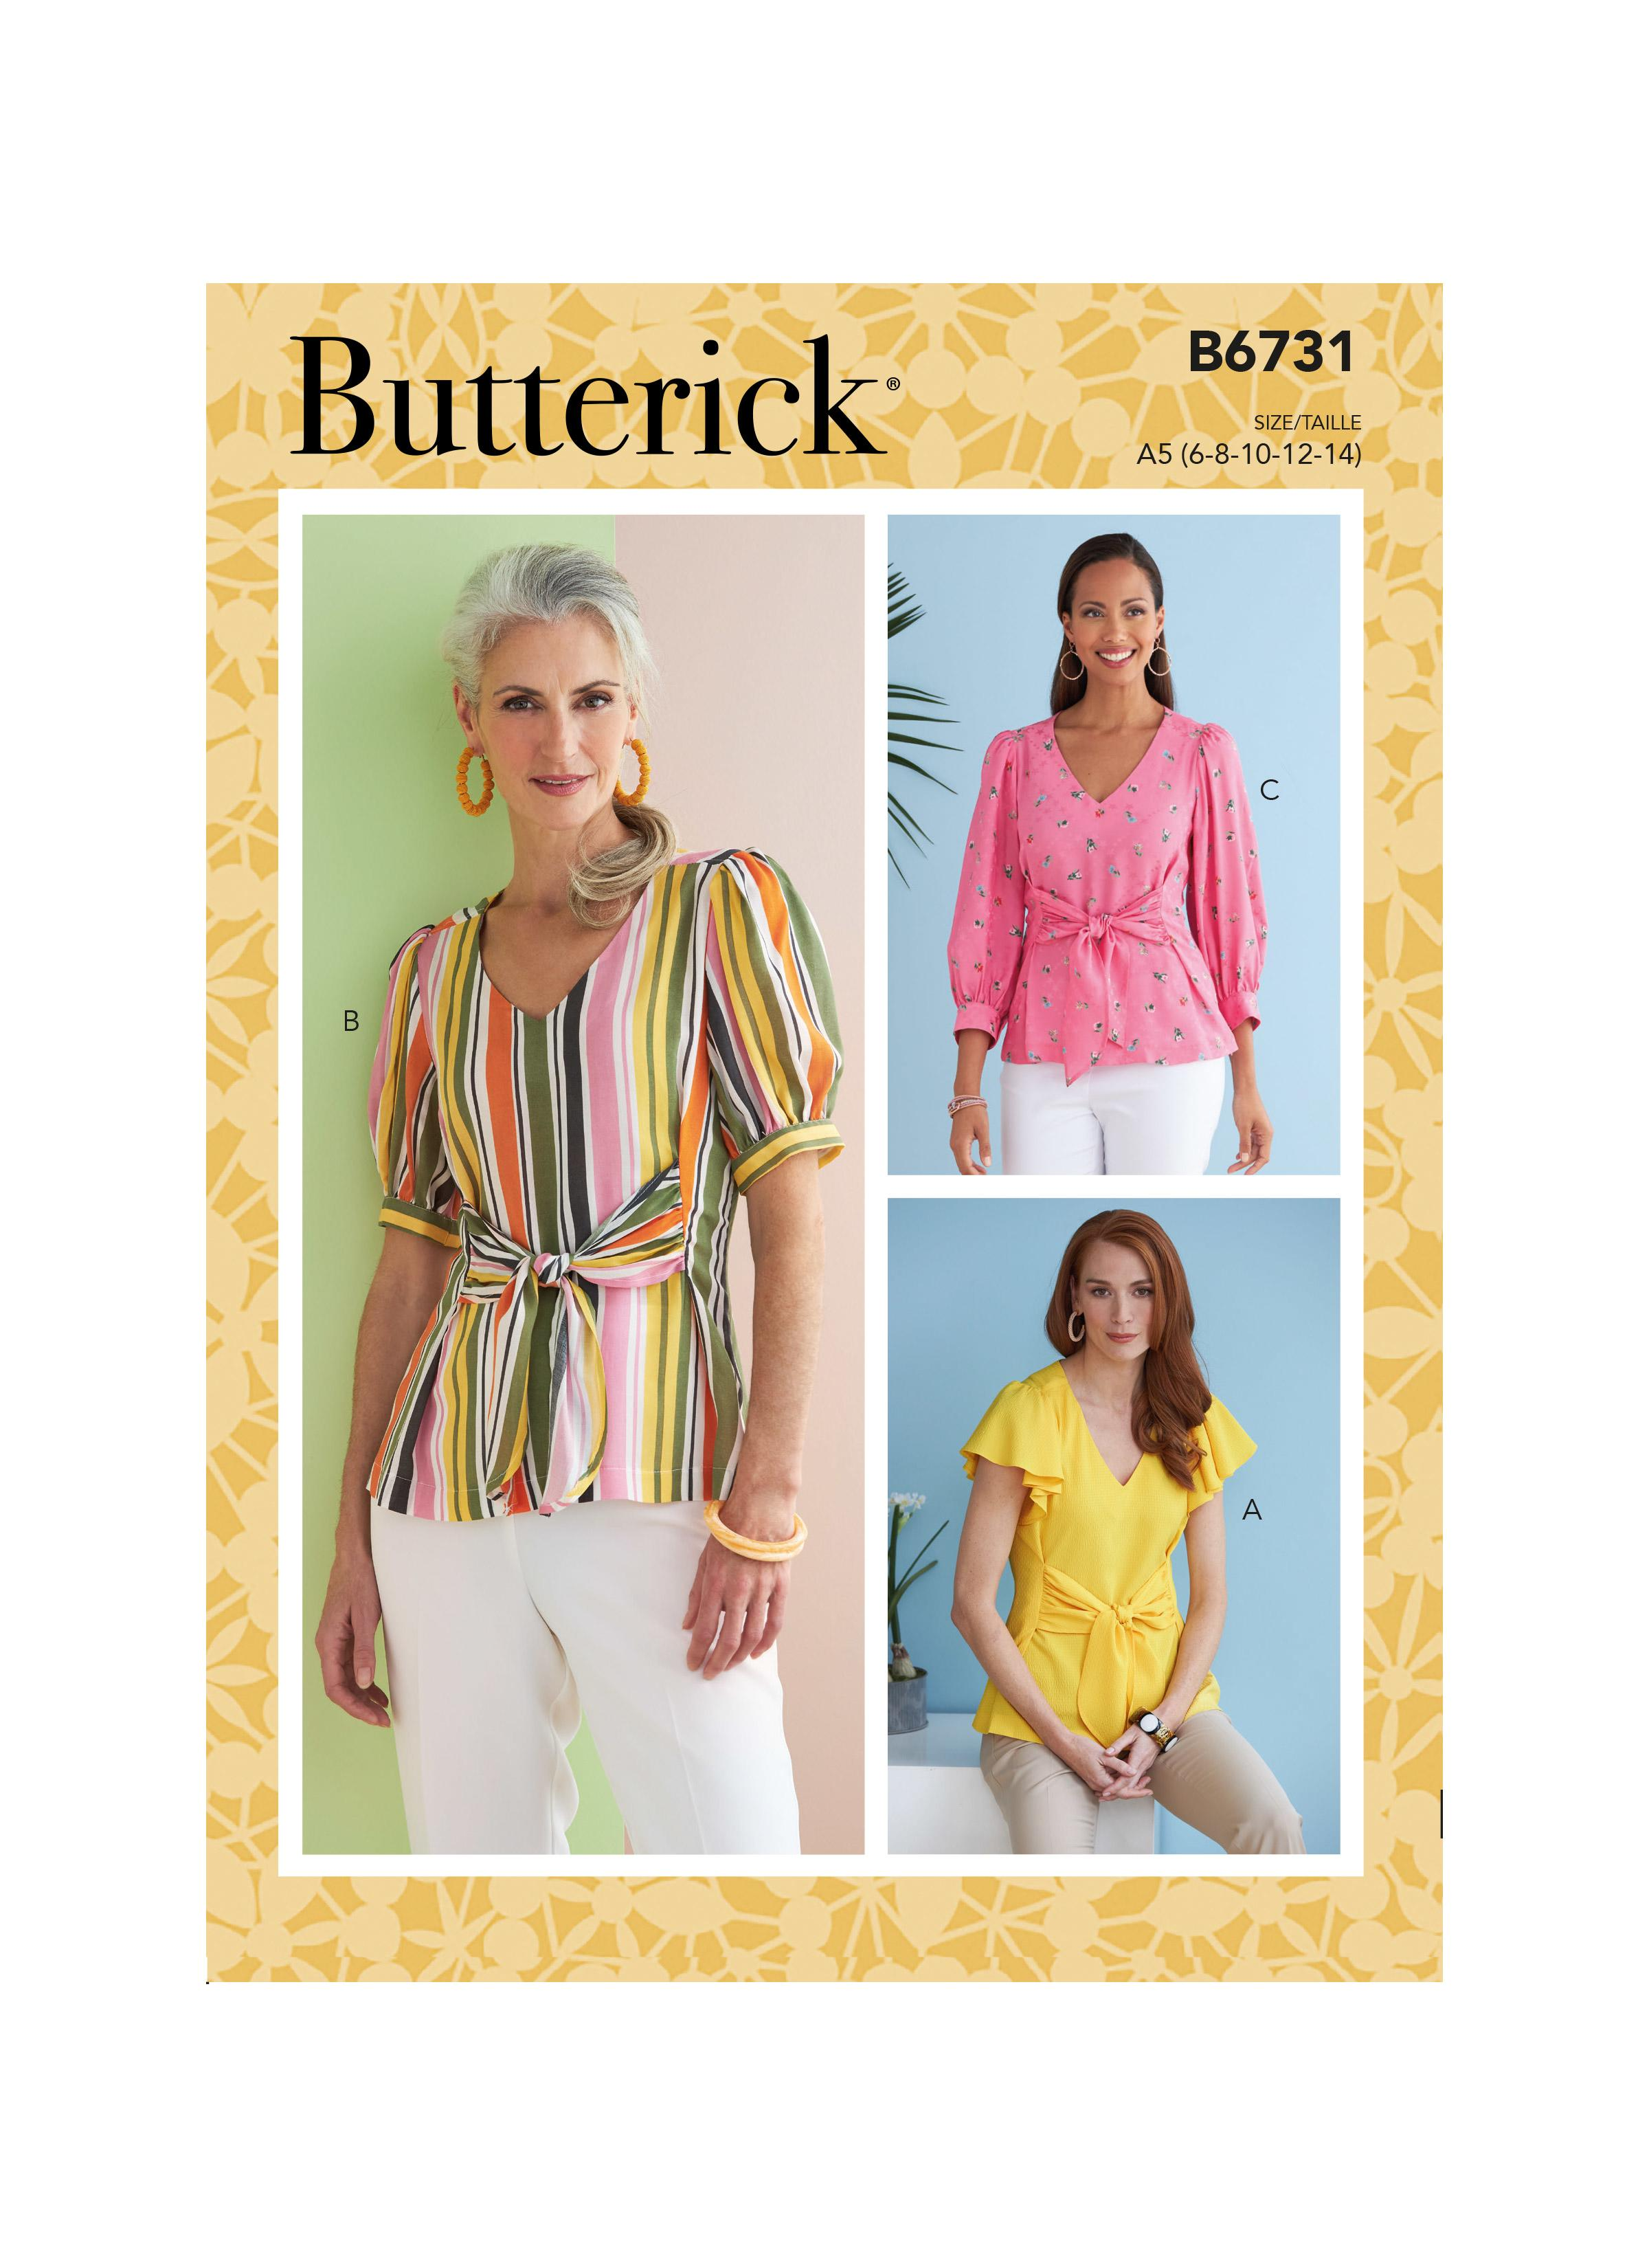 Butterick B6731 Misses' Top